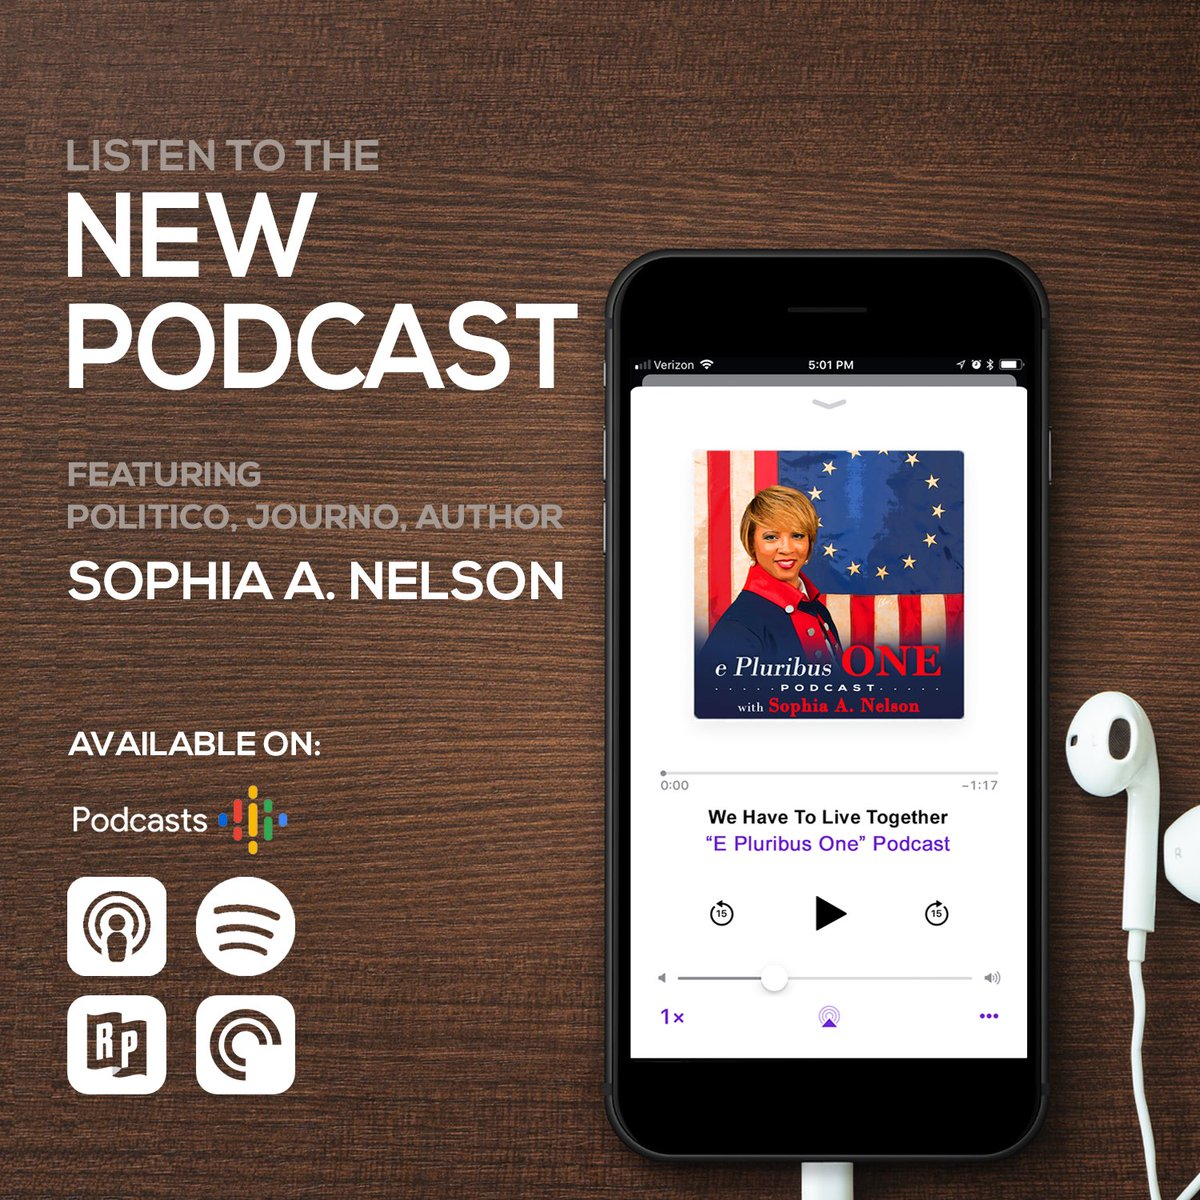 Must Listen to this new #Podcast by @IAmSophiaNelson about the conservatives and white nationalists reaction to the #1619Project @nytimes she nails it. Check out her new show on America. Culture. Politics. And Race. LISTEN:  https:// anchor.fm/sophia-angeli- nelson/episodes/The-New-York-Times-1619-Project-Controversy-e50cvo   …  #epluribusOne <br>http://pic.twitter.com/1tYofTzSKz